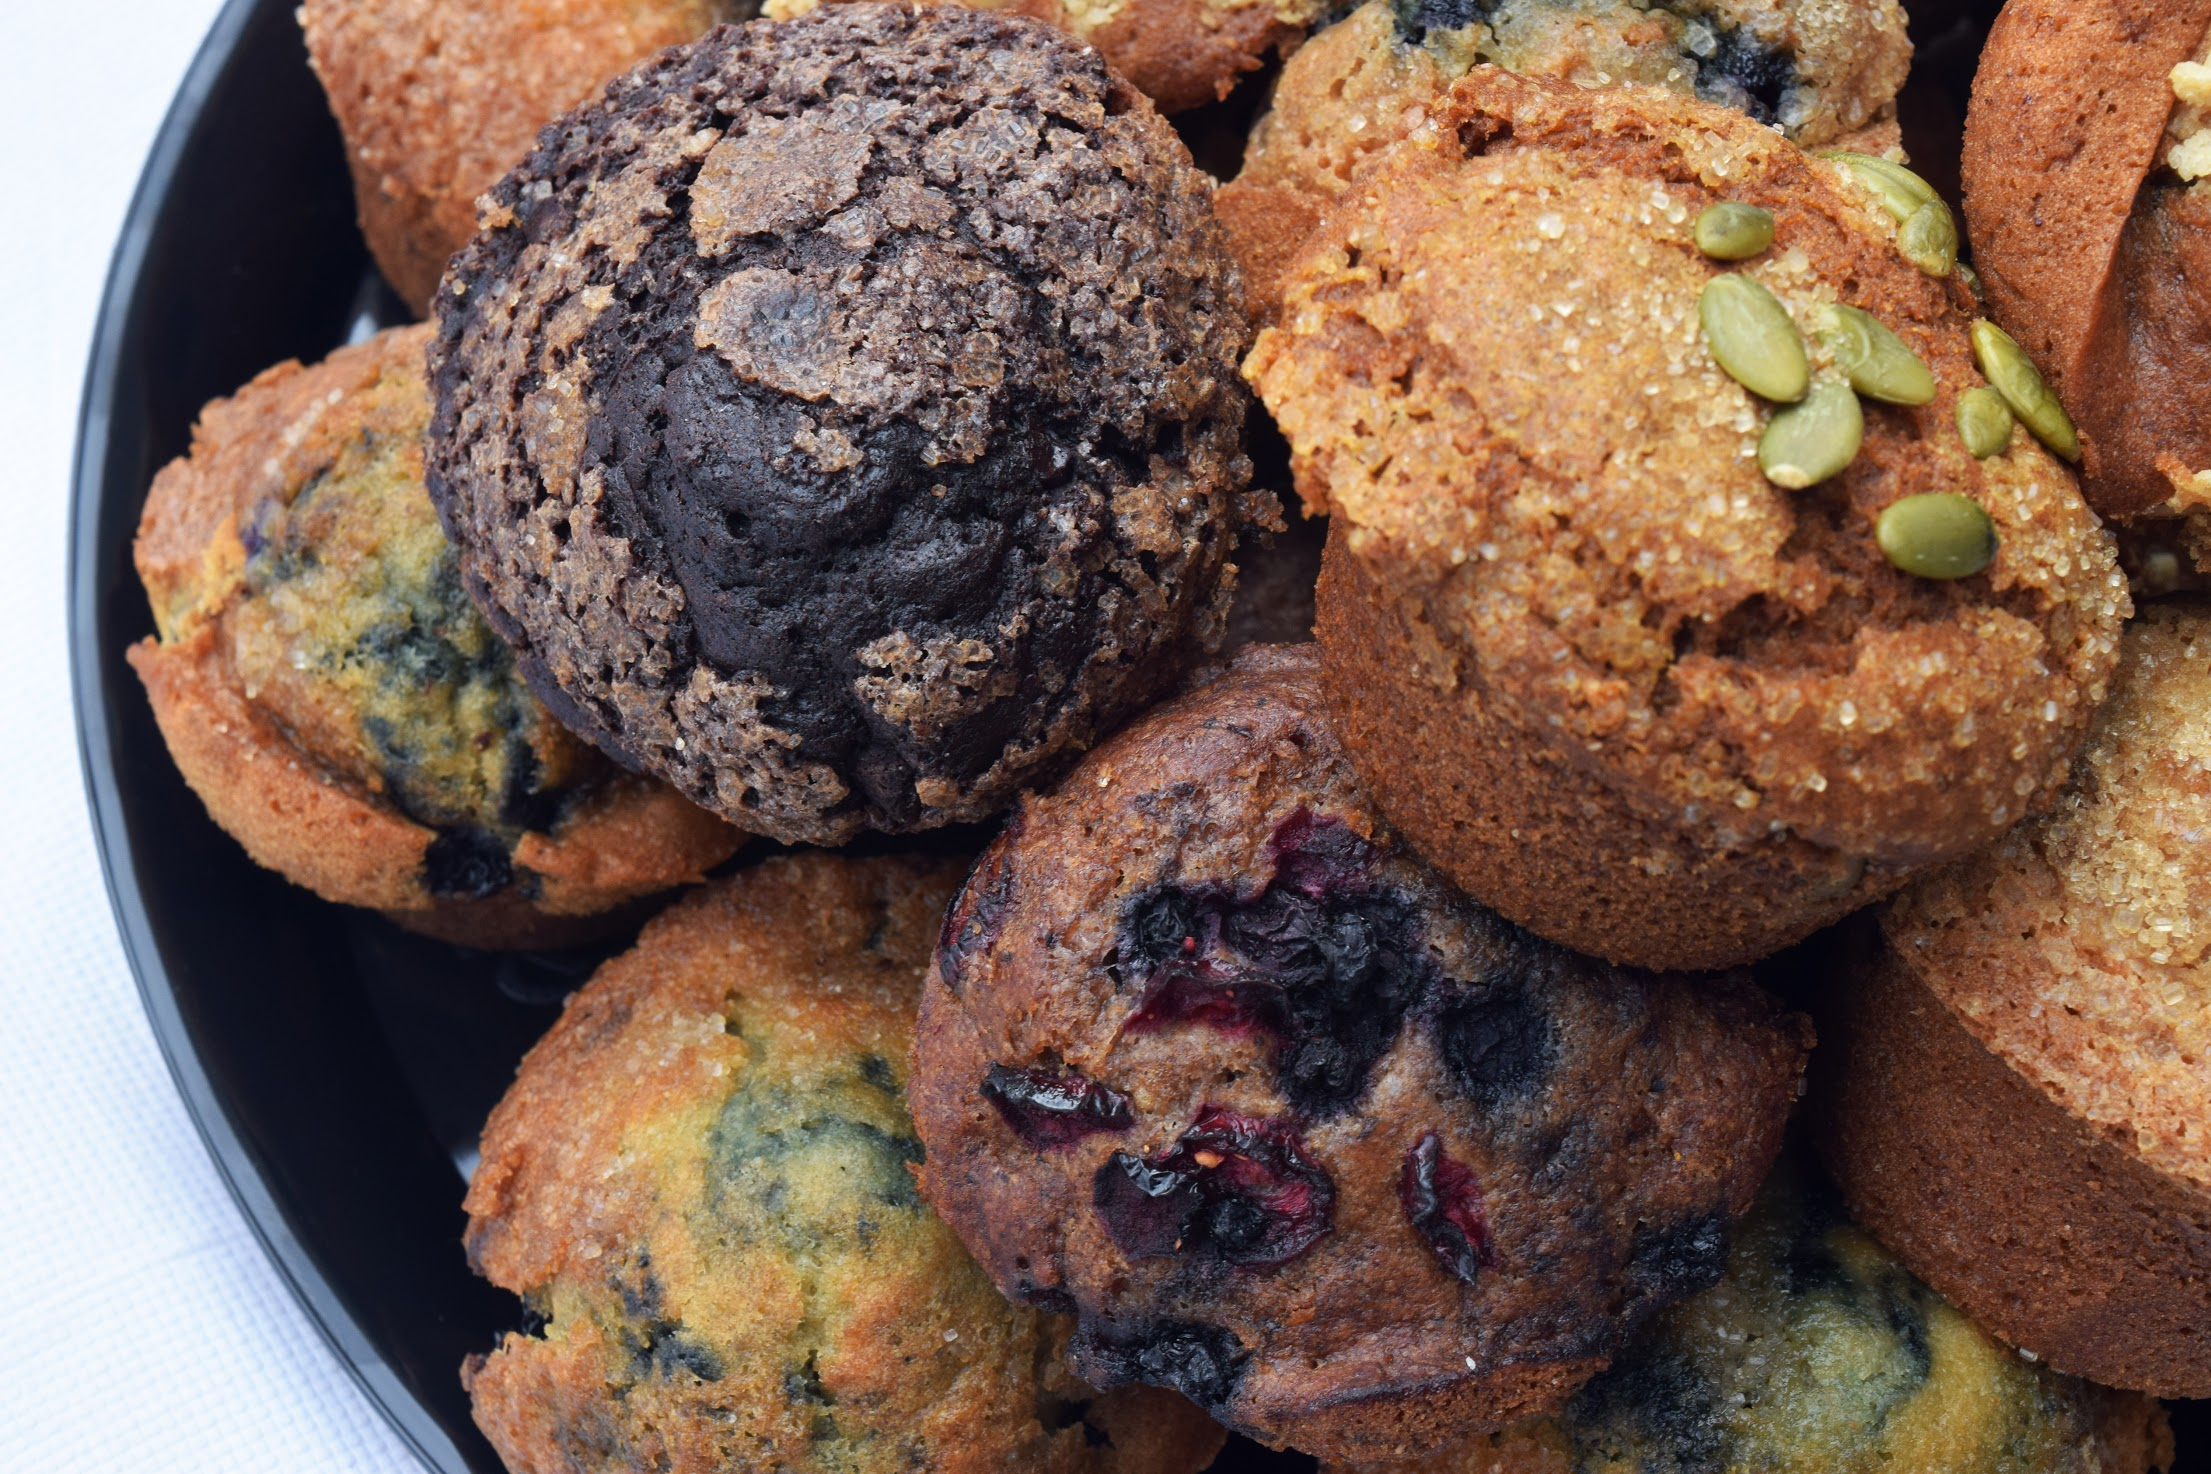 A plate of muffins sits on a white table